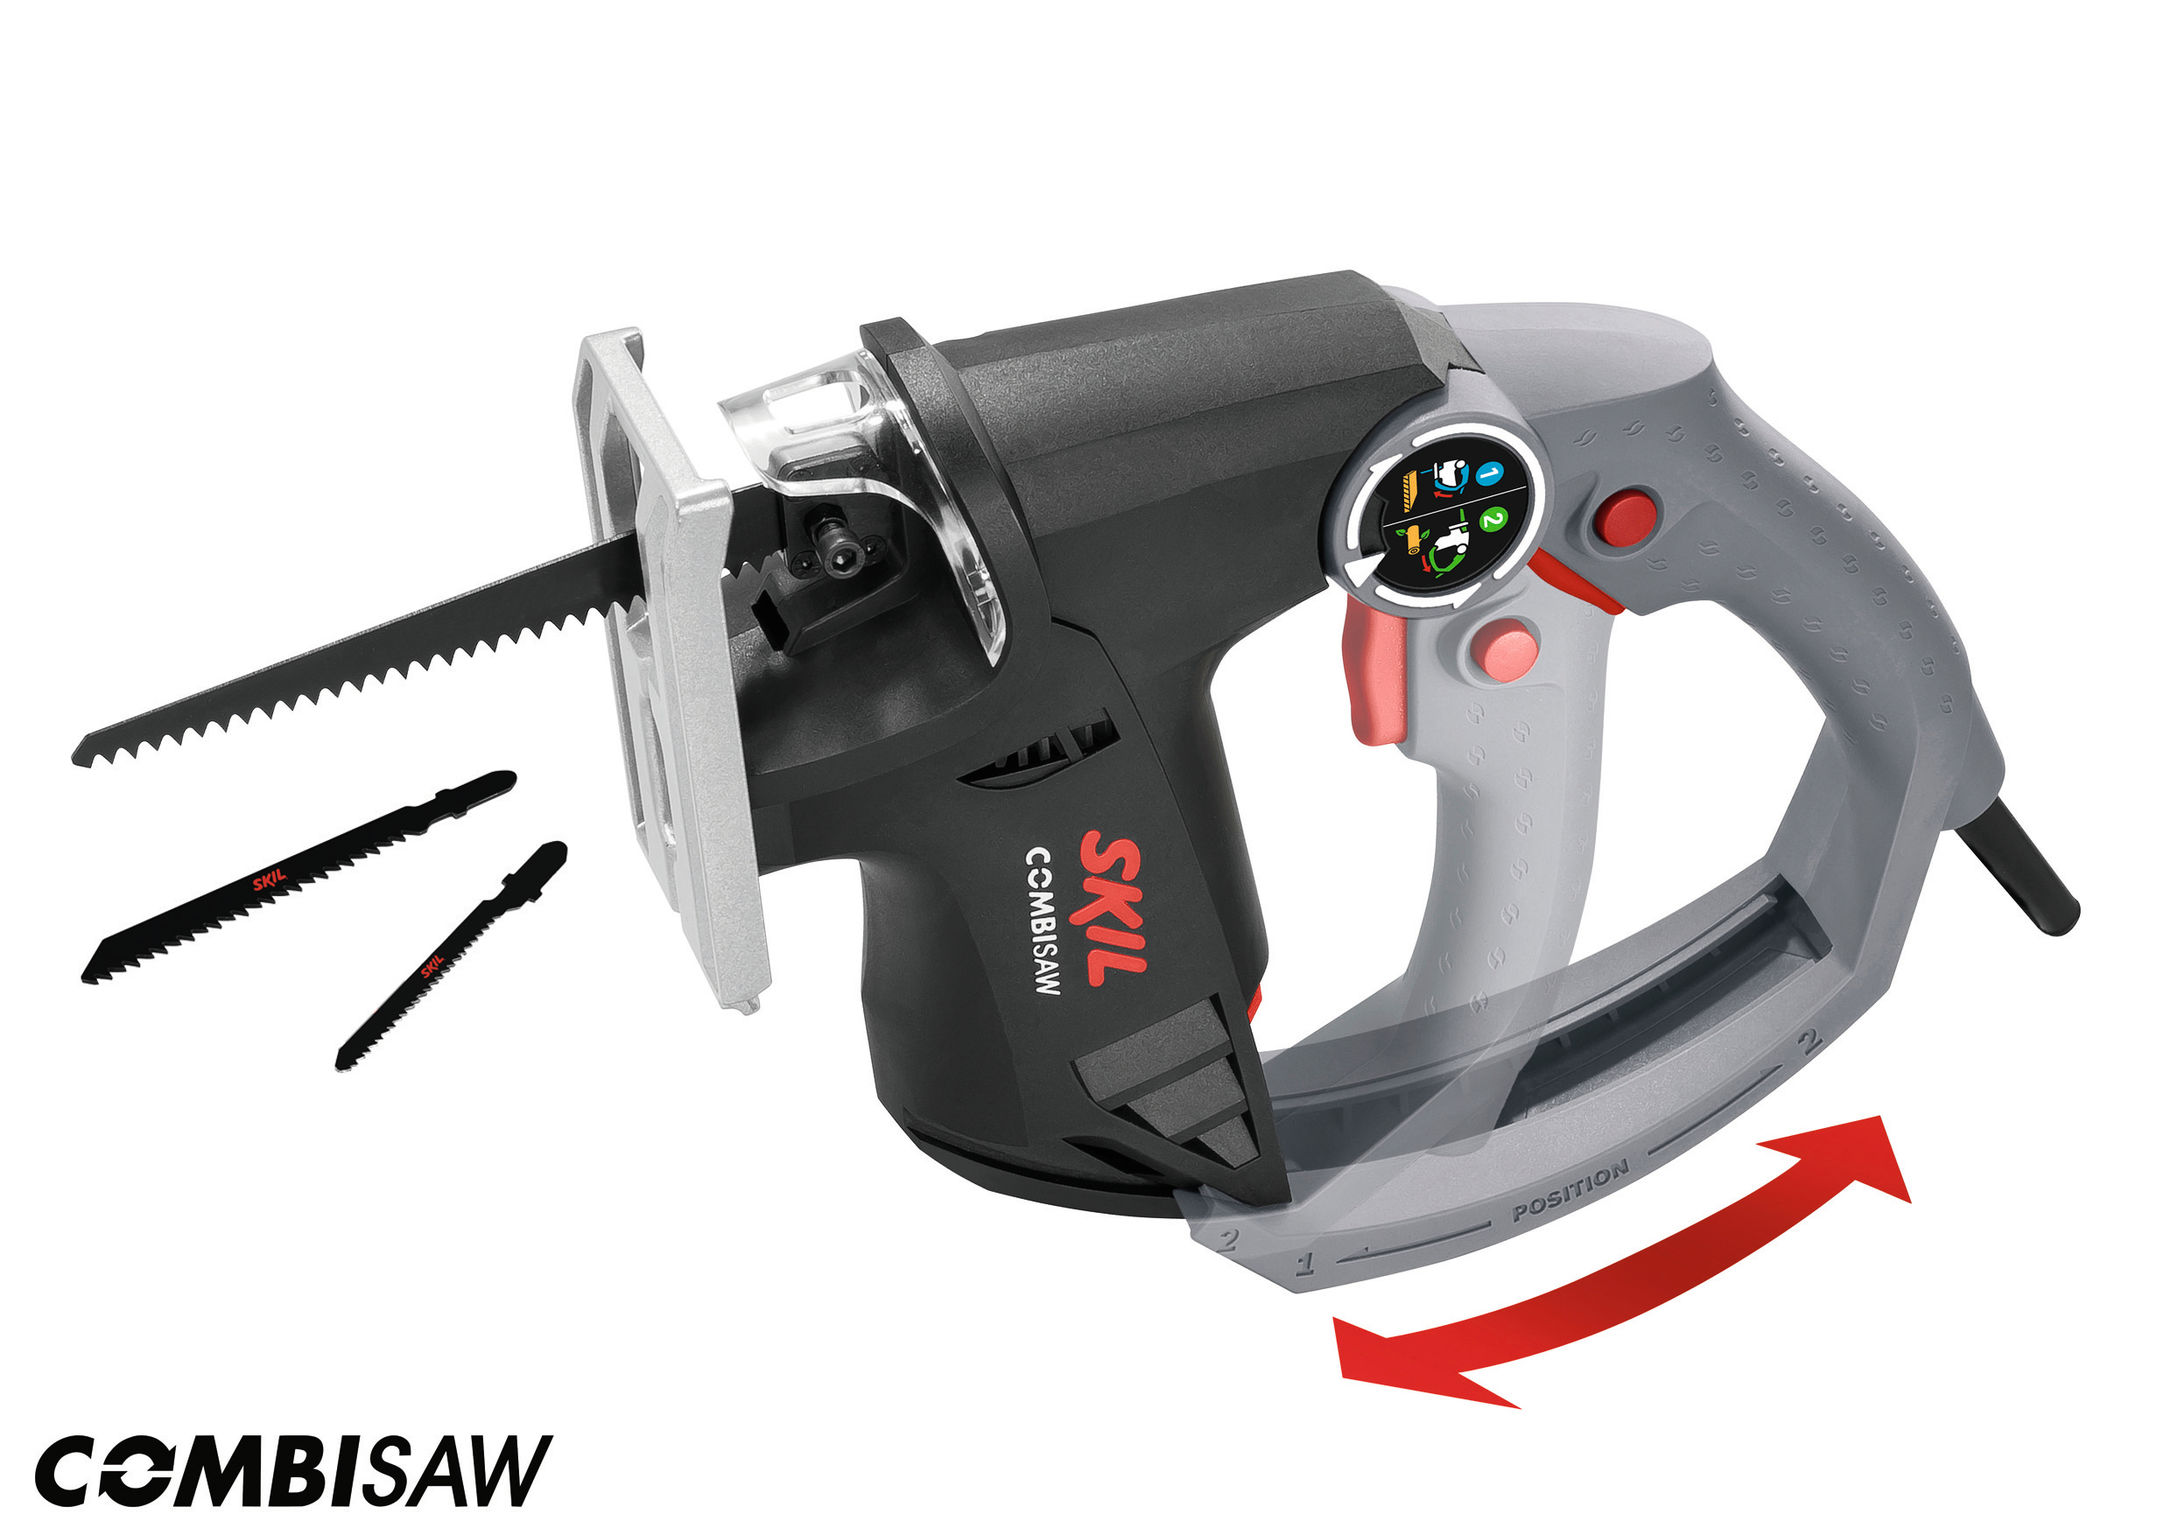 skil 4600 combisaw entry if world design guide